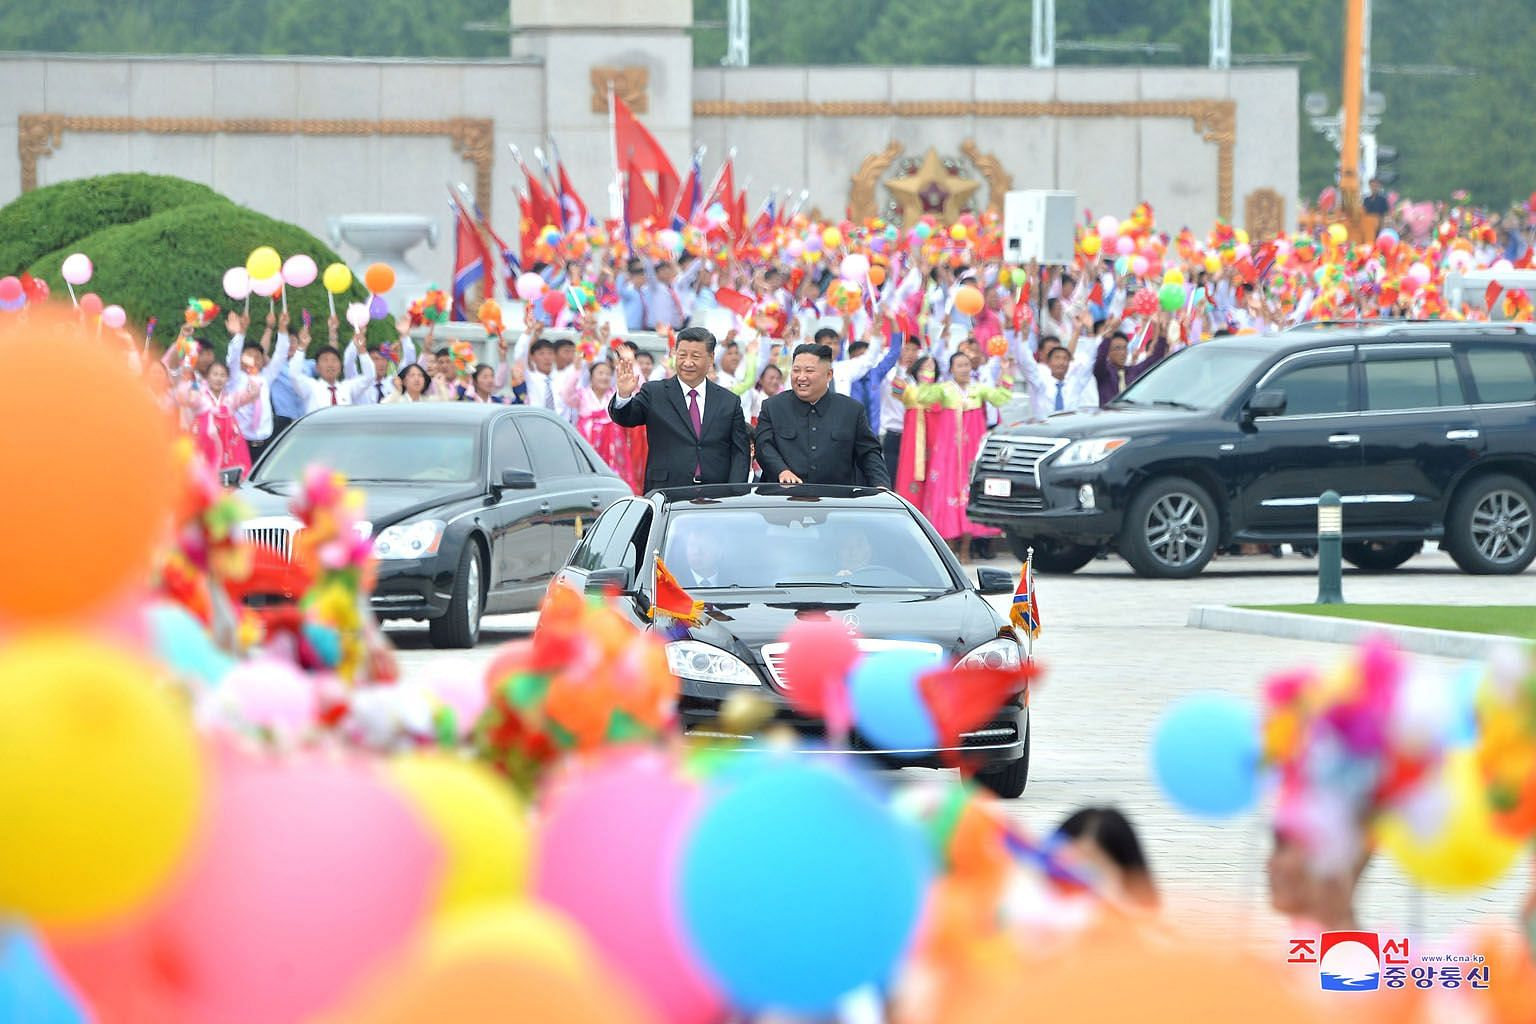 North Korean leader Kim Jong Un with Chinese President Xi Jinping at a welcome ceremony at the Pyongyang International Airport during Mr Xi's visit last week. The writer states that in the longer term, better ties work for both Beijing's and Pyongyan